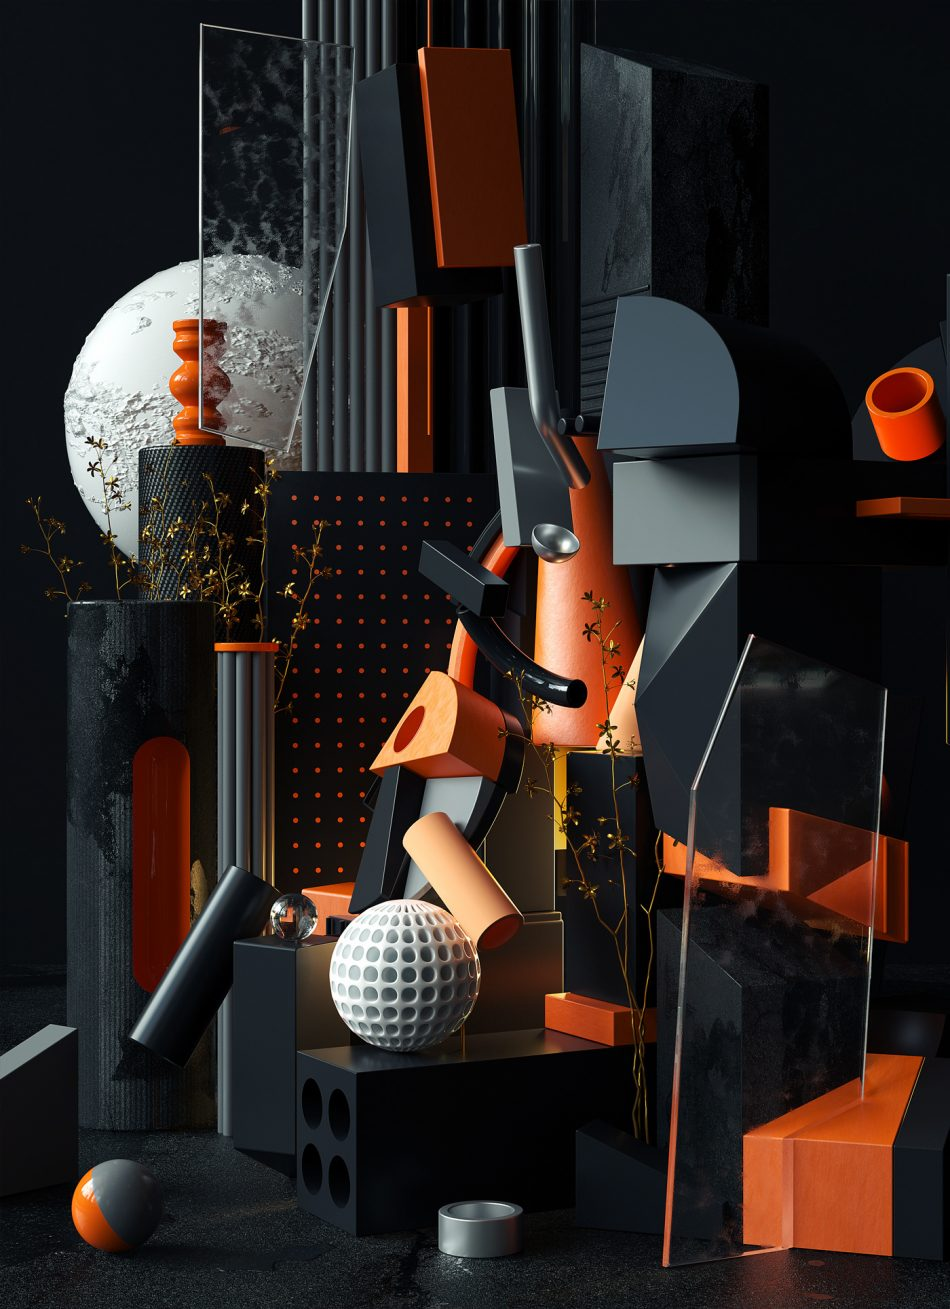 Cubist Compositions by Omar Aqil cubist composition Cubist Compositions by Omar Aqil Cubist Compositions 5 1